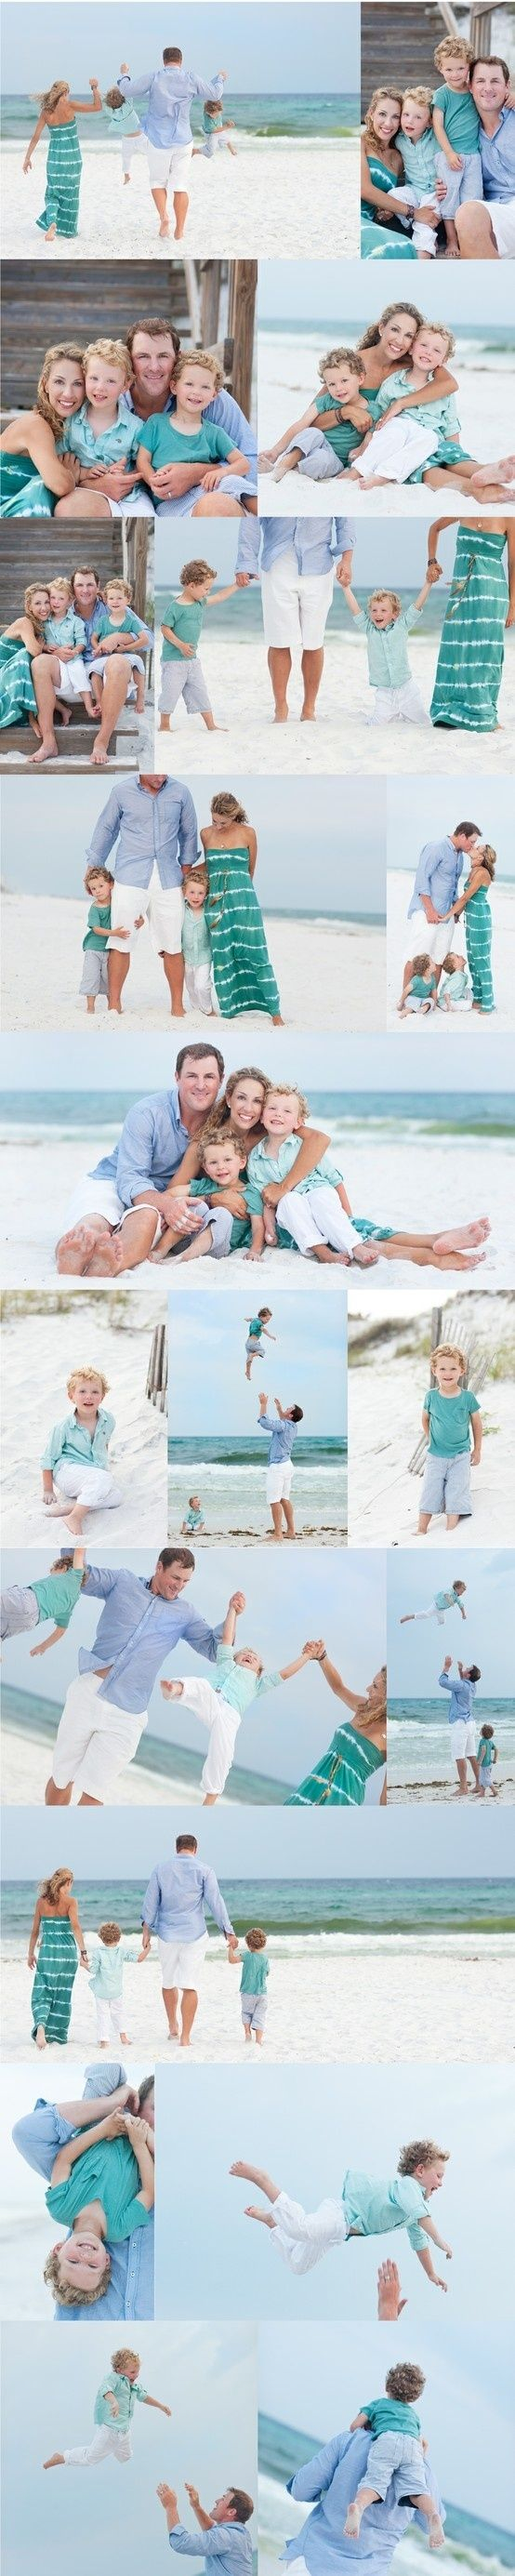 pretty family pictures on the beach!